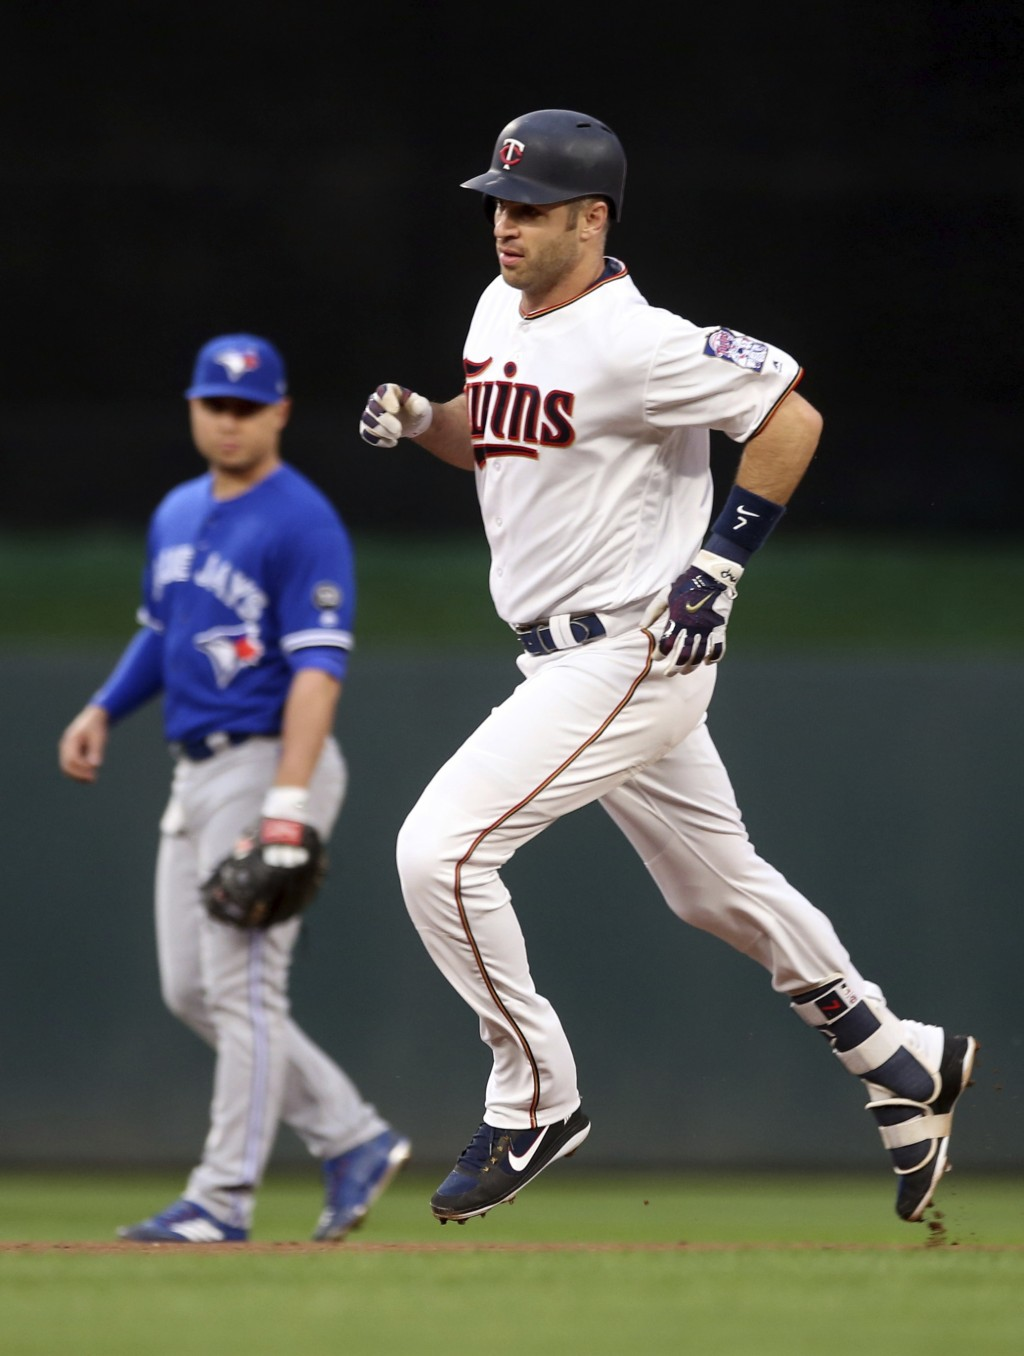 Minnesota Twins' Joe Mauer rounds the bases on a solo home run off Toronto Blue Jays' pitcher Marco Estrada during the first inning of a baseball game...